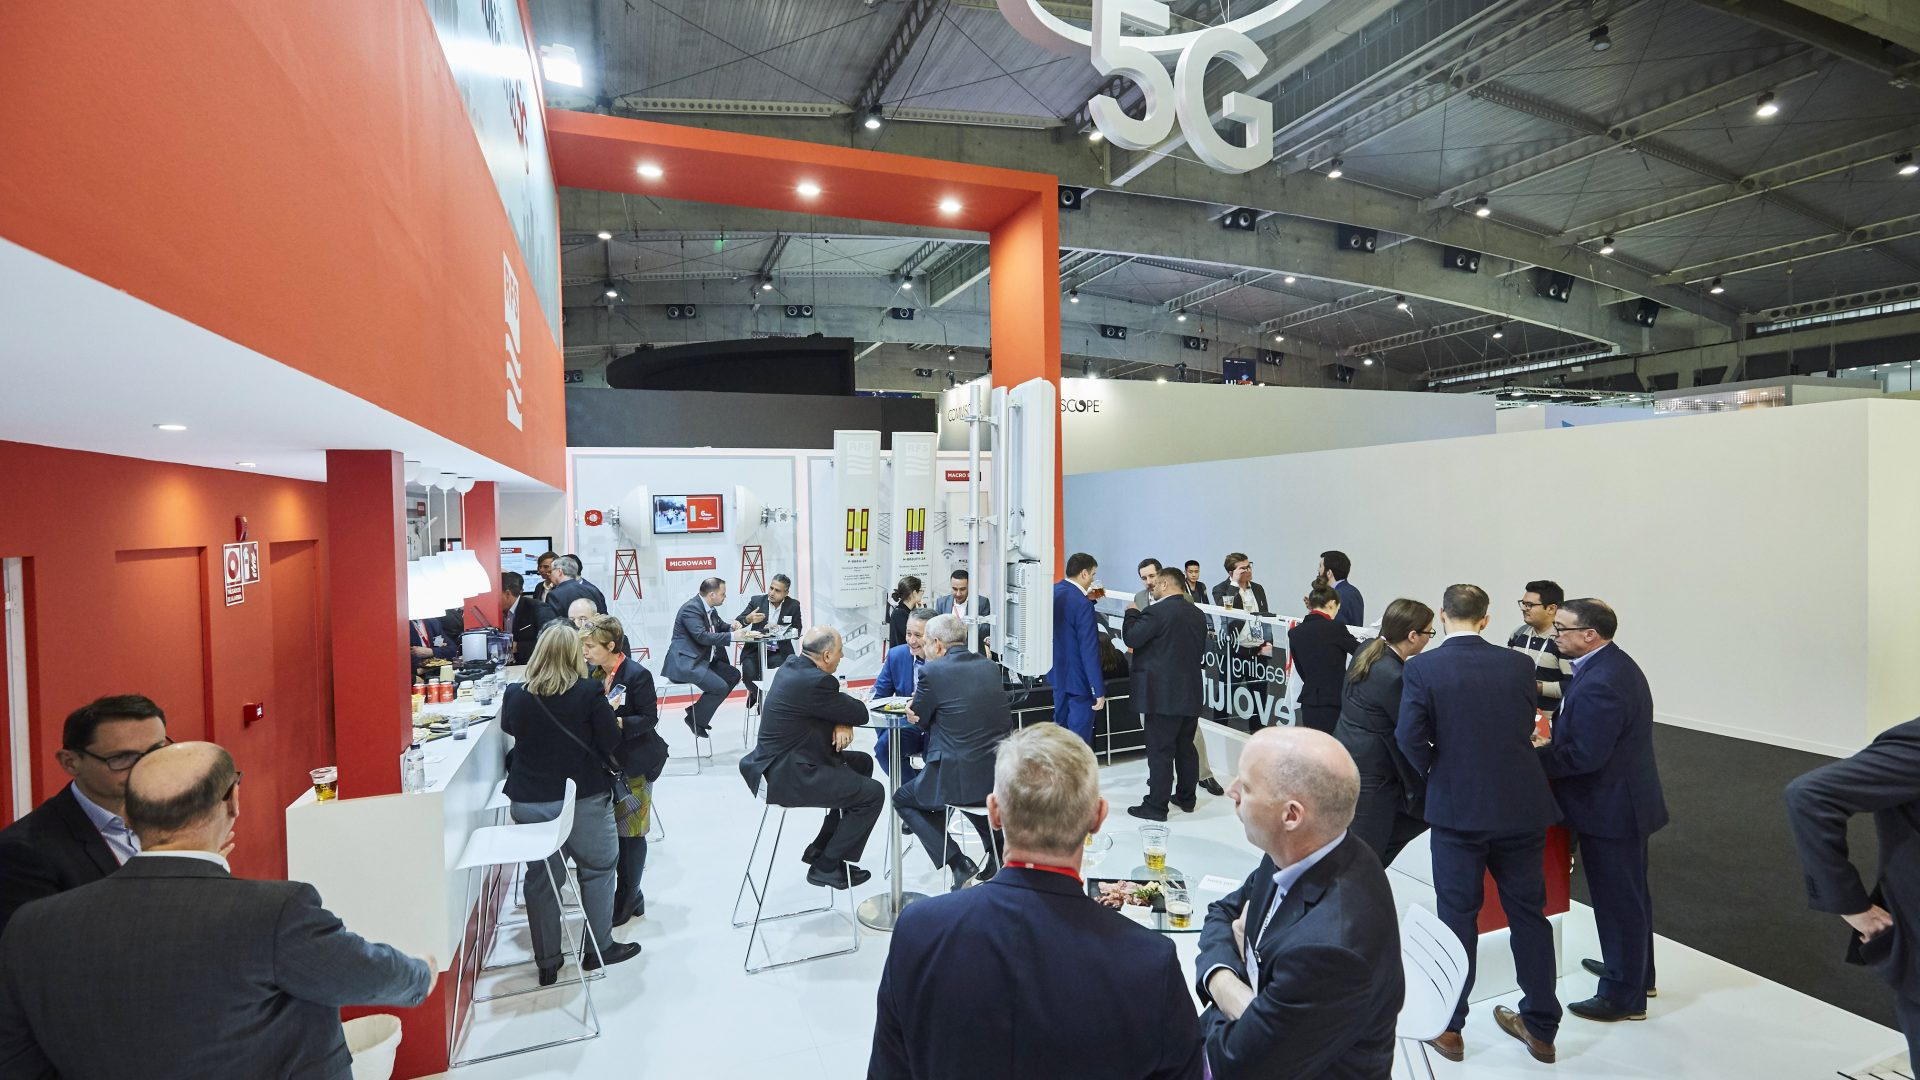 RFS booth at MWC 2019 - the open lounge